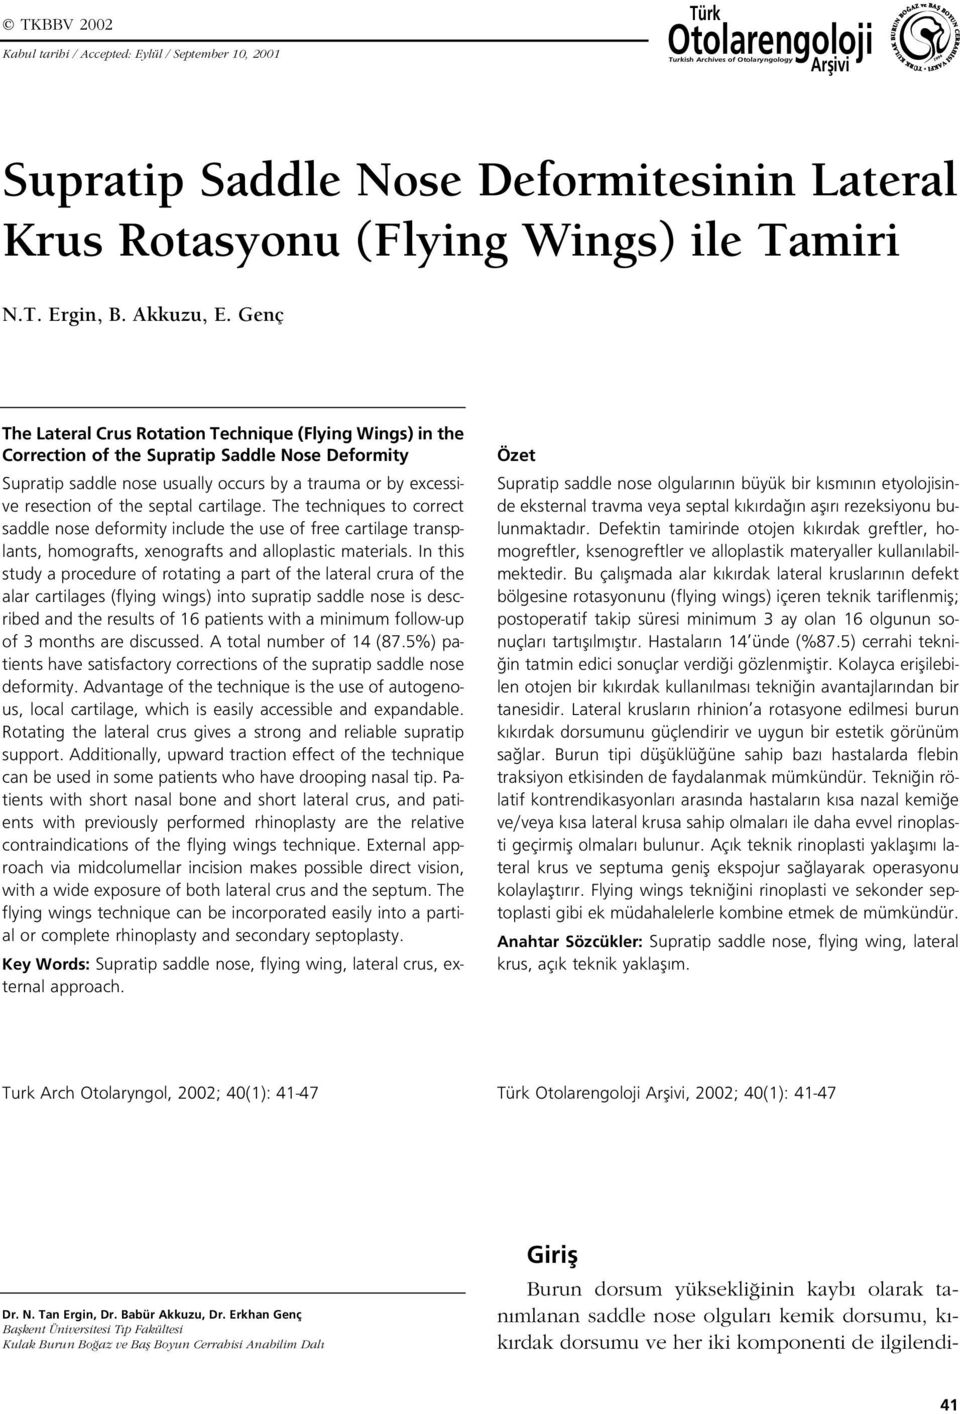 Genç The Lateral Crus Rotation Technique (Flying Wings) in the Correction of the Supratip Saddle Nose Deformity Supratip saddle nose usually occurs by a trauma or by excessive resection of the septal